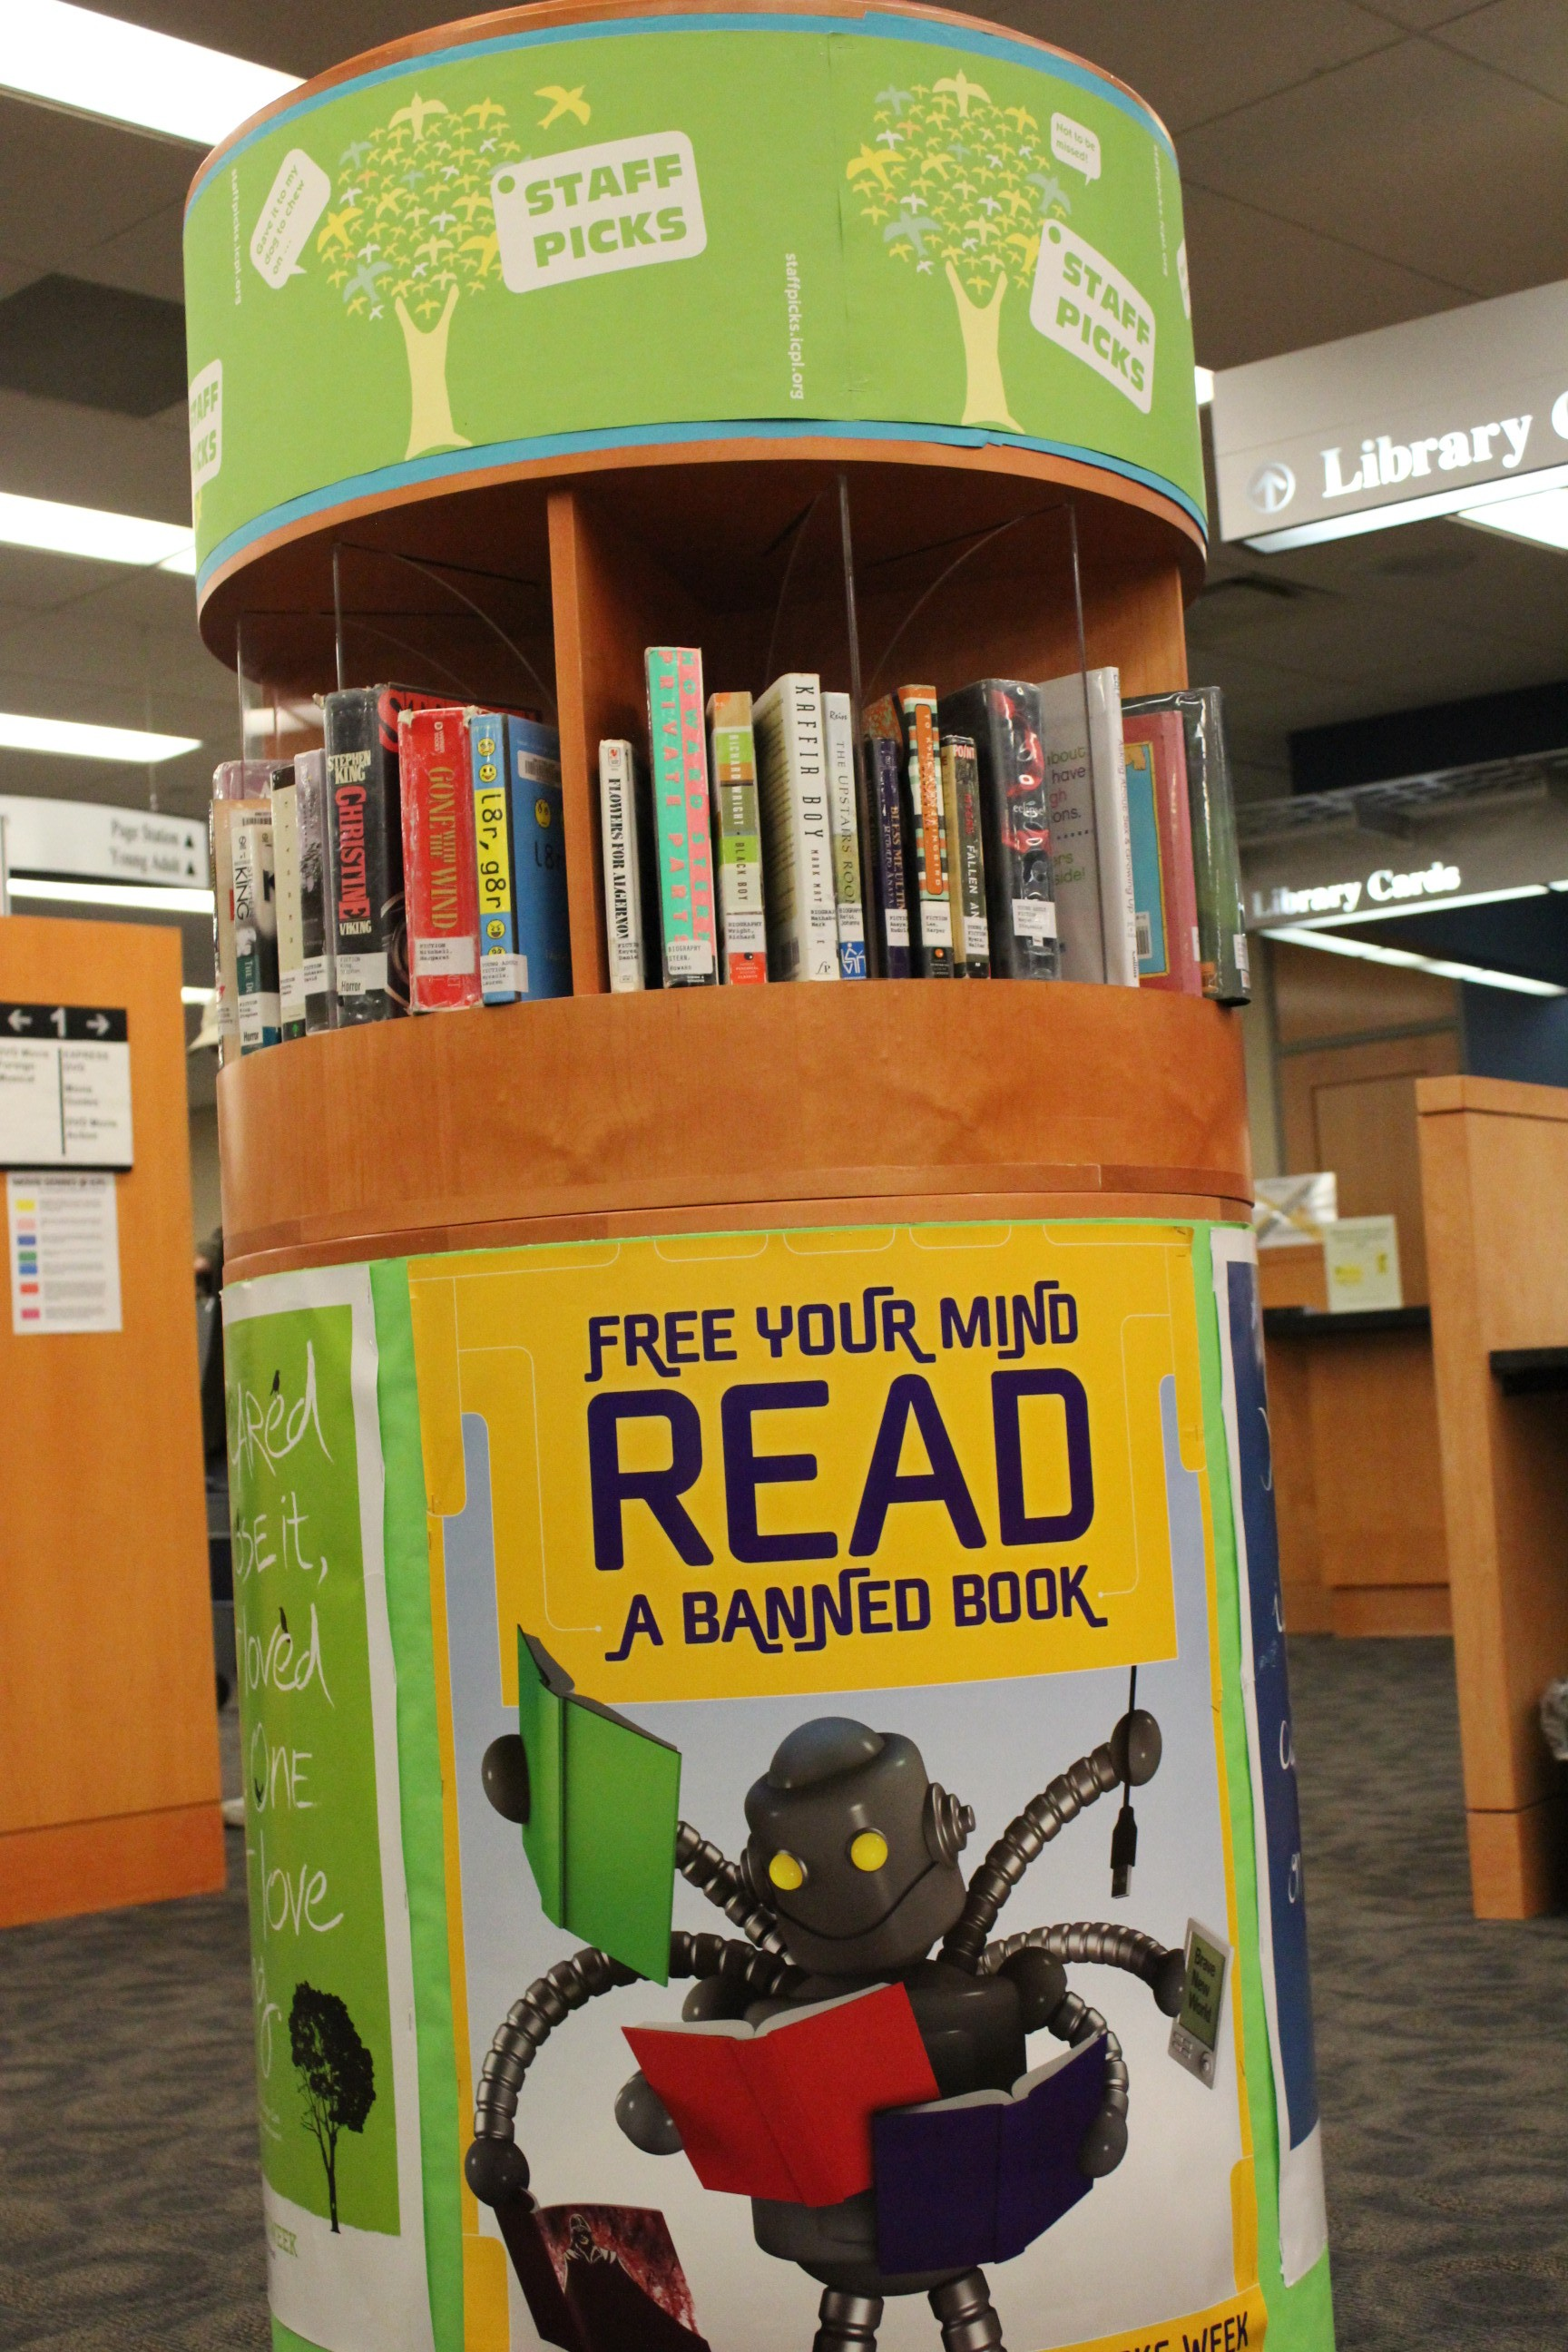 Iowa City (Iowa) Public Library uses theme posters for its circular display.